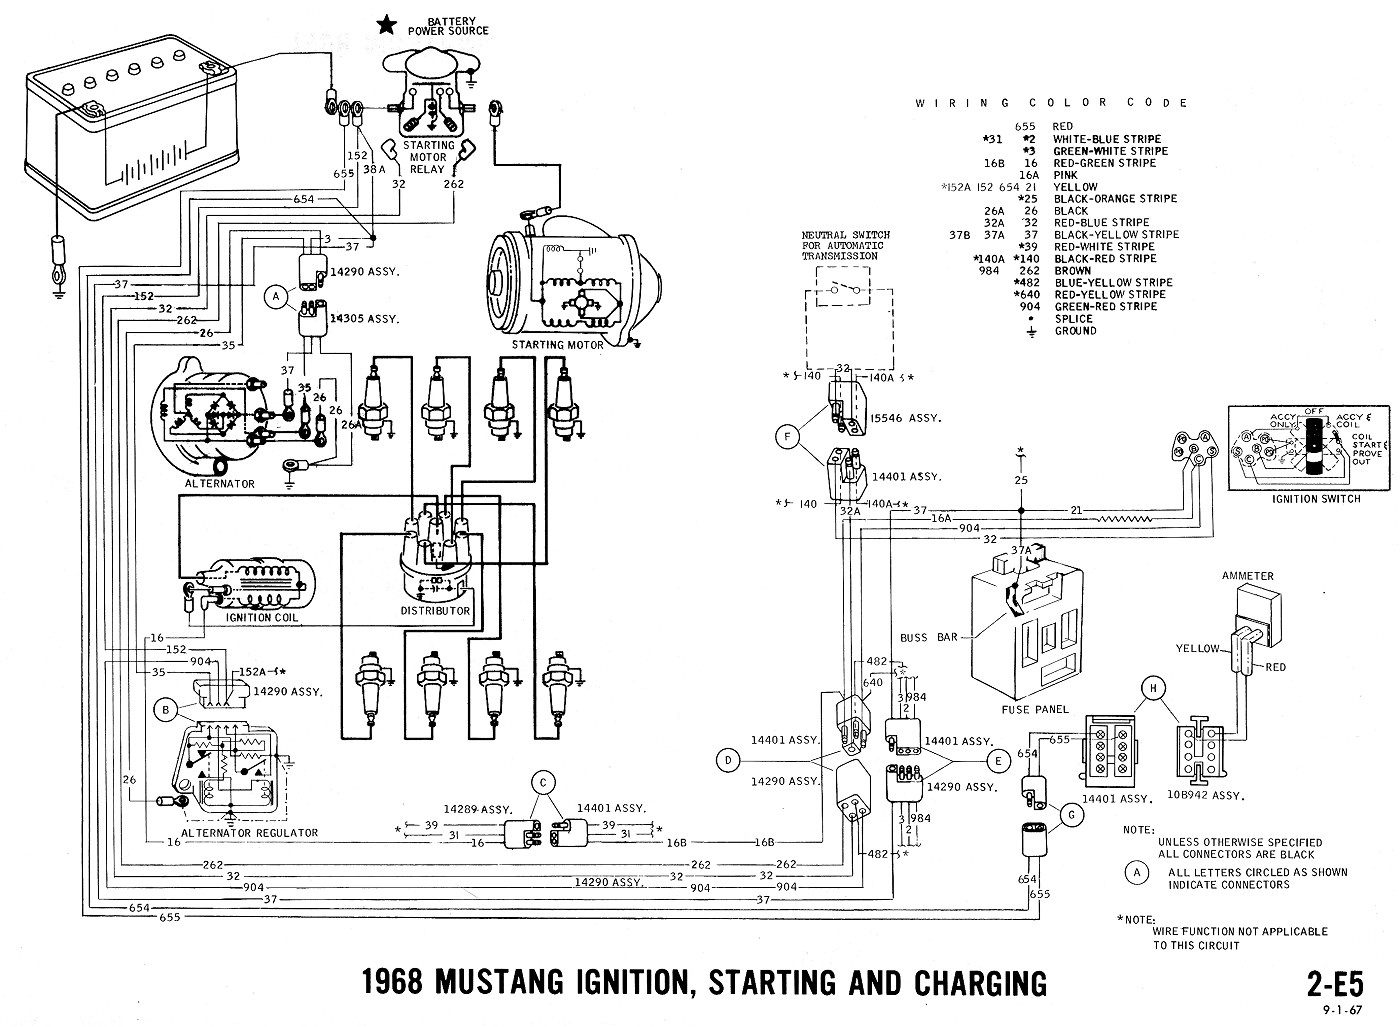 E5 1968 mustang wiring diagrams evolving software 1968 camaro gauge cluster wiring diagram at gsmx.co